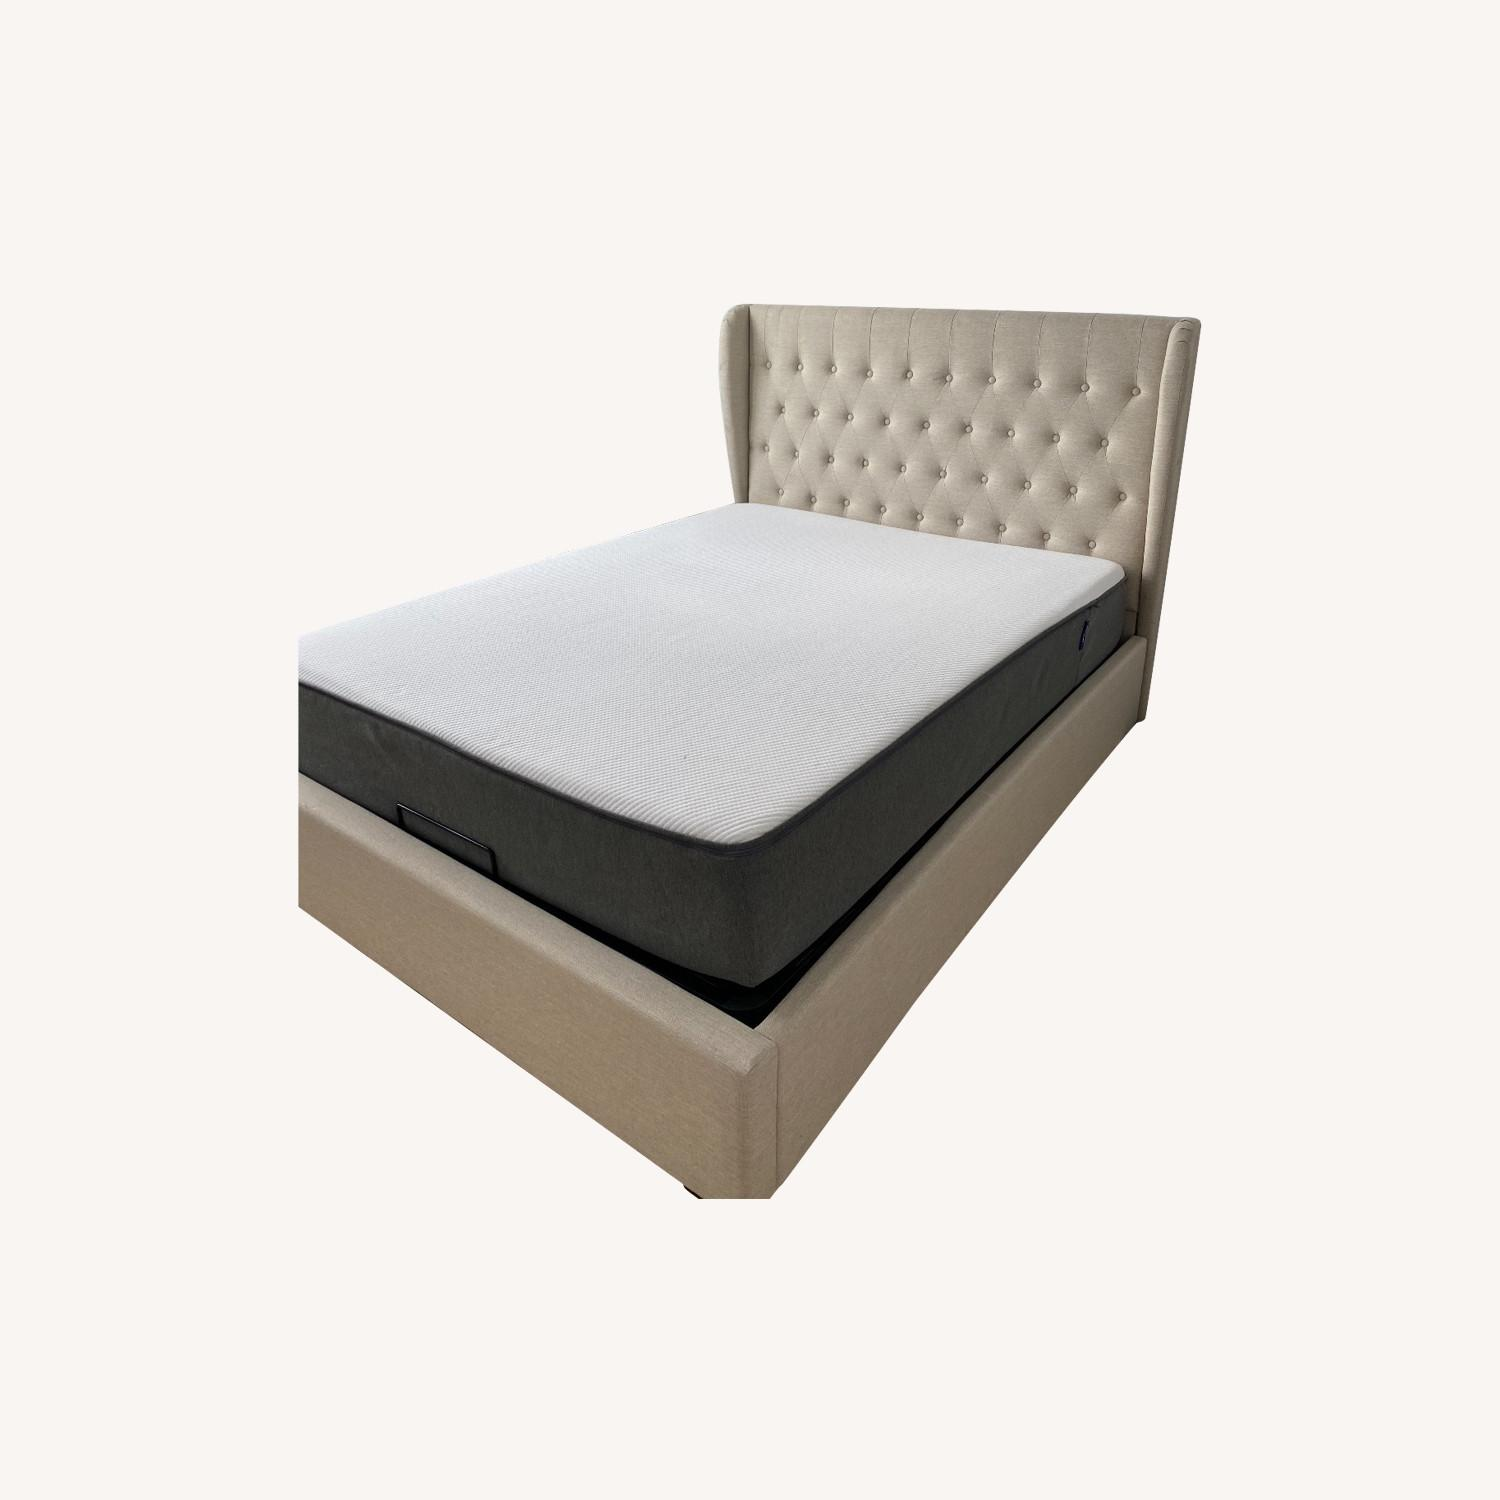 Wayfair Upholstered Storage Platform Queen Bed Aptdeco